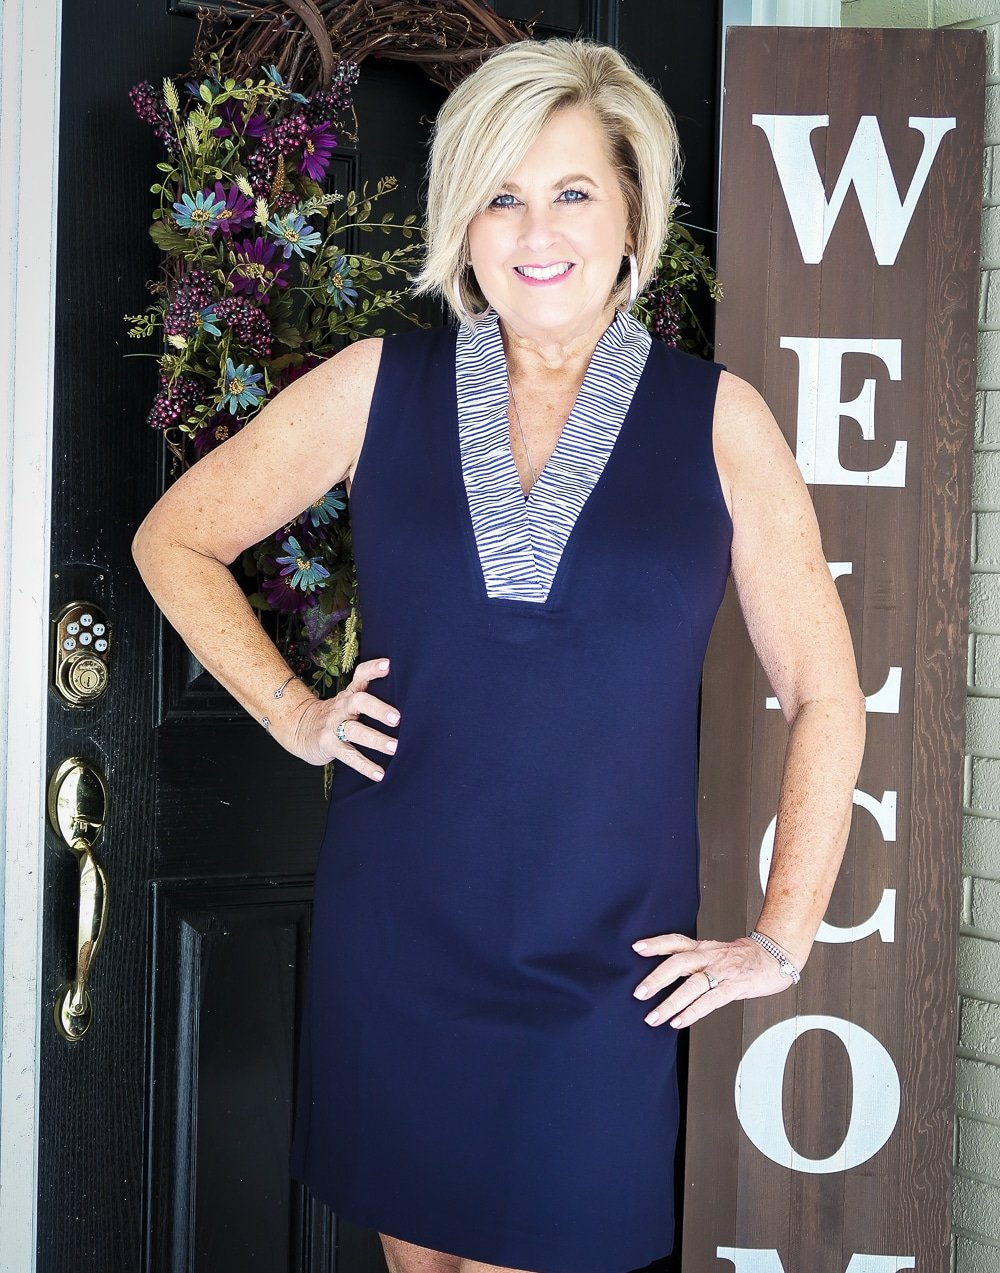 Fashion Blogger 50 Is Not Old is celebrating turning 60 with a navy sheath dress with a striped ruffled neckline